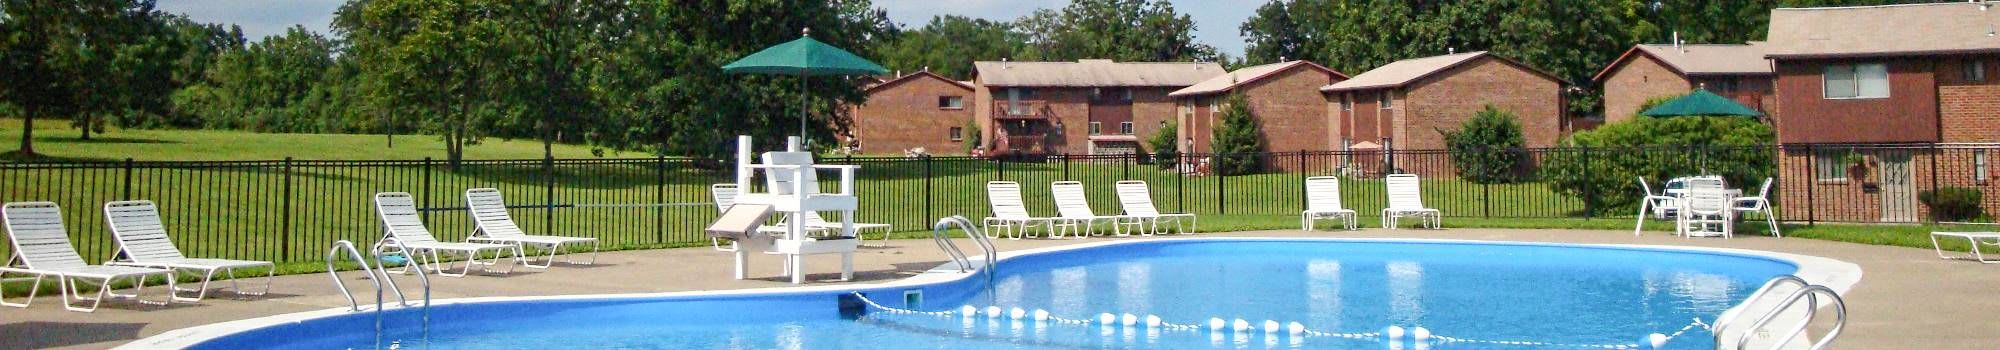 Great amenities at High Acres Apartments & Townhomes